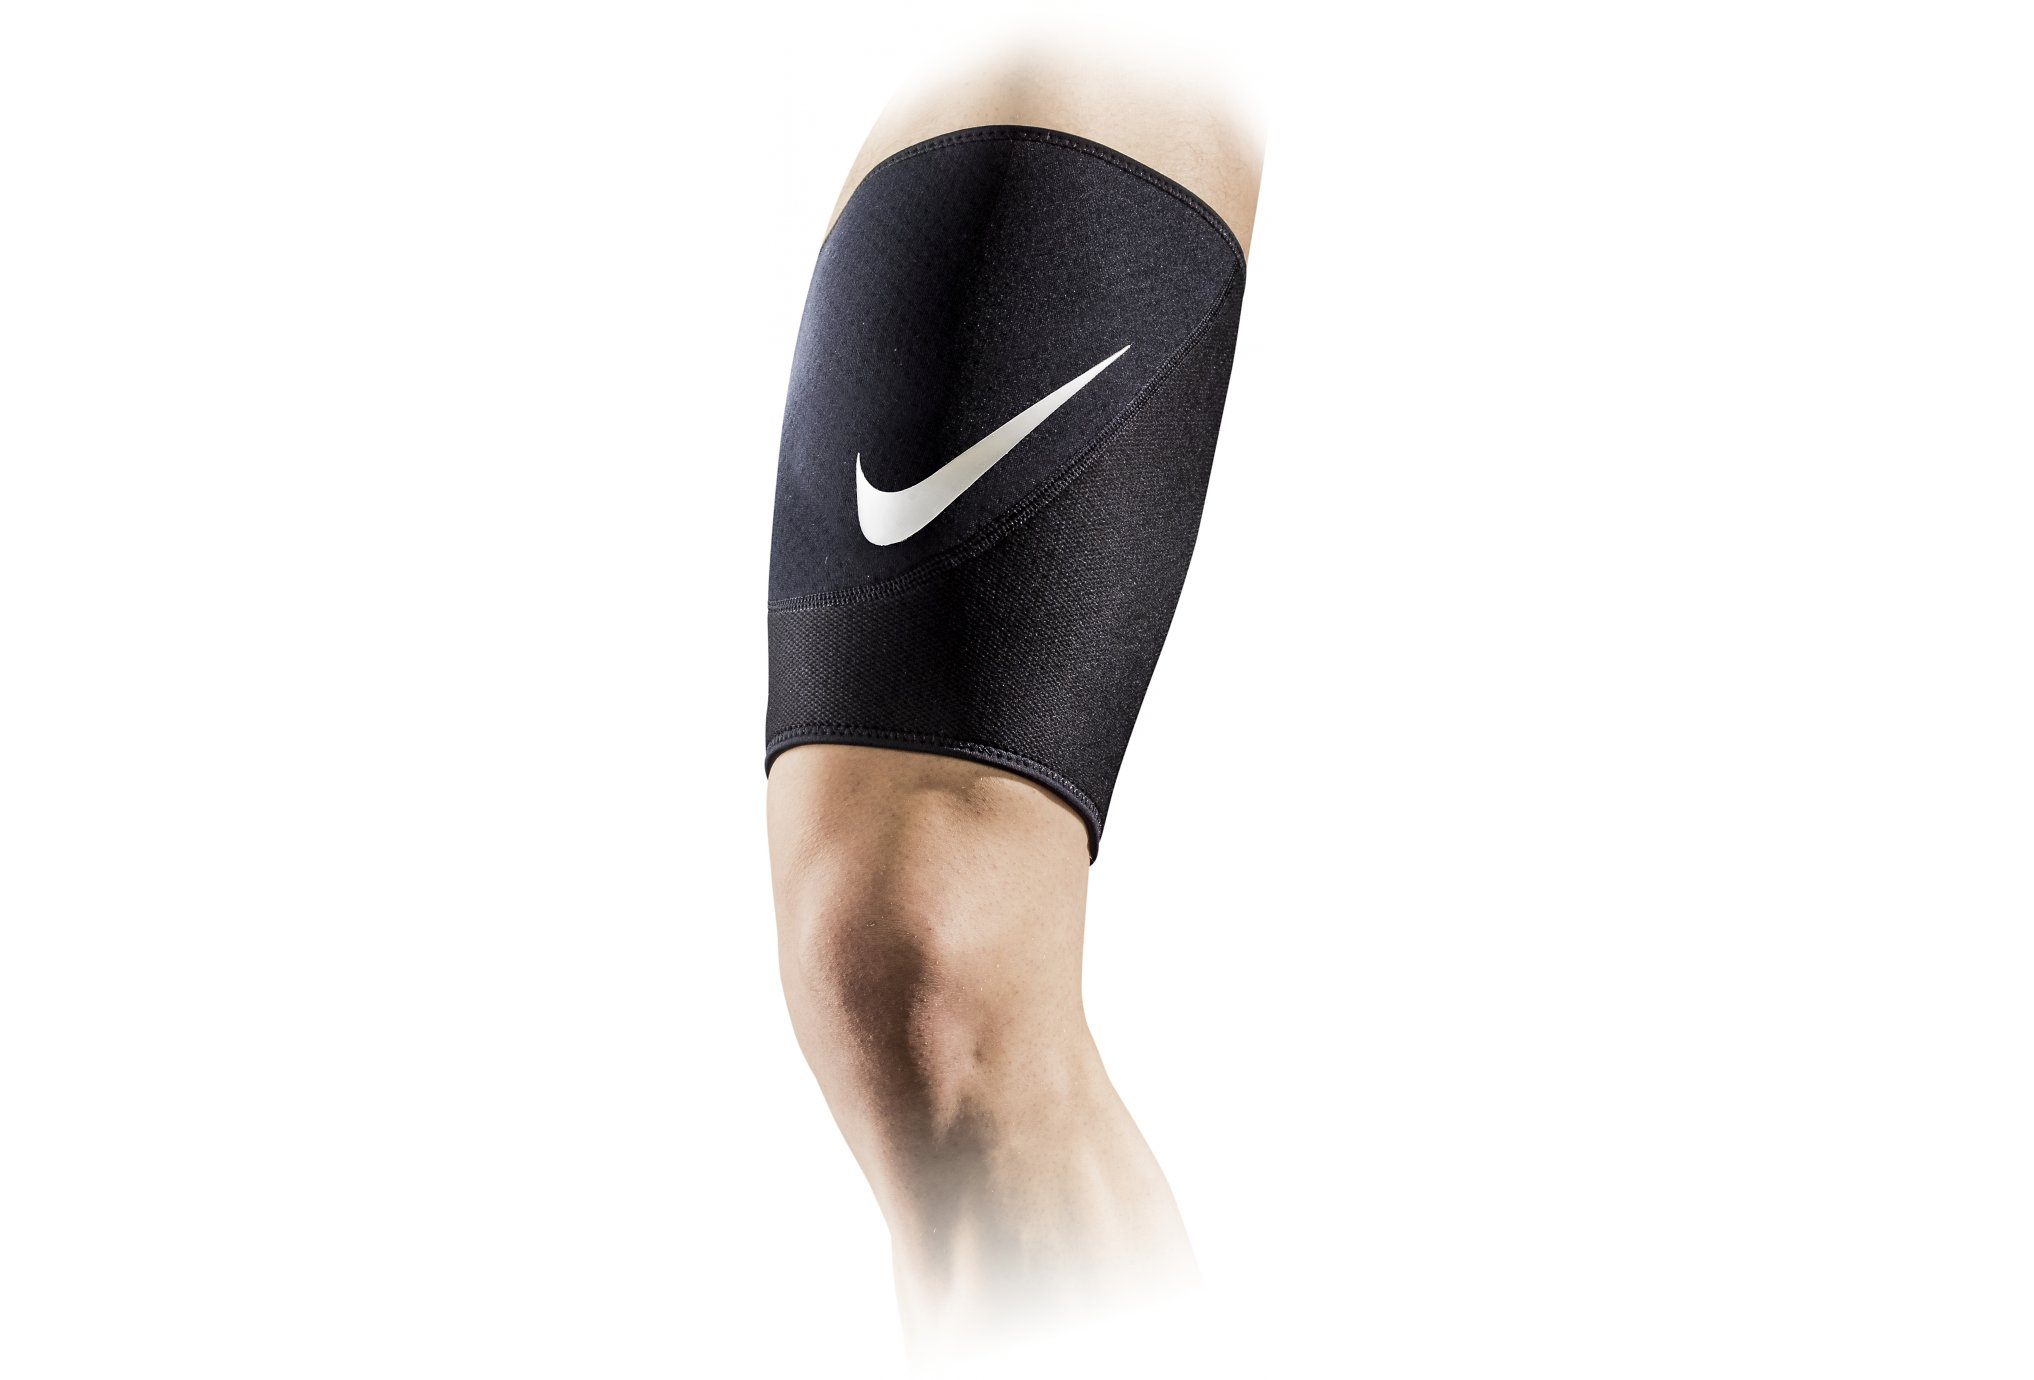 Nike Pro Protège Cuisse 2.0 Protection musculaire & articulaire